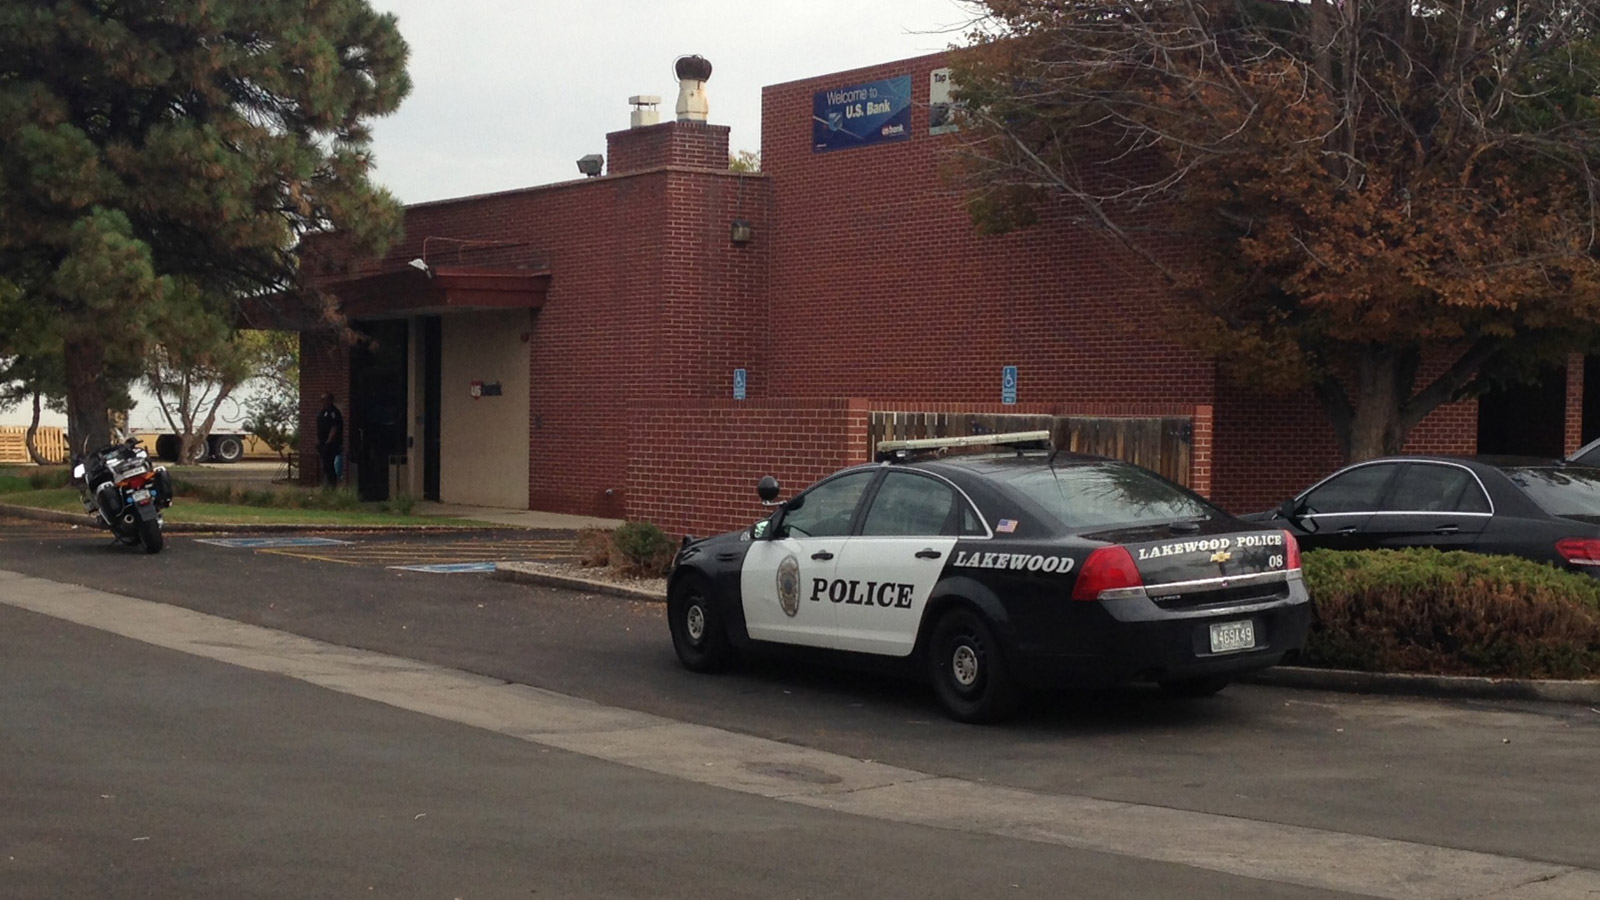 Police in Lakewood searched for a bank robber at the US Bank at 14th and Carr (credit: CBS)